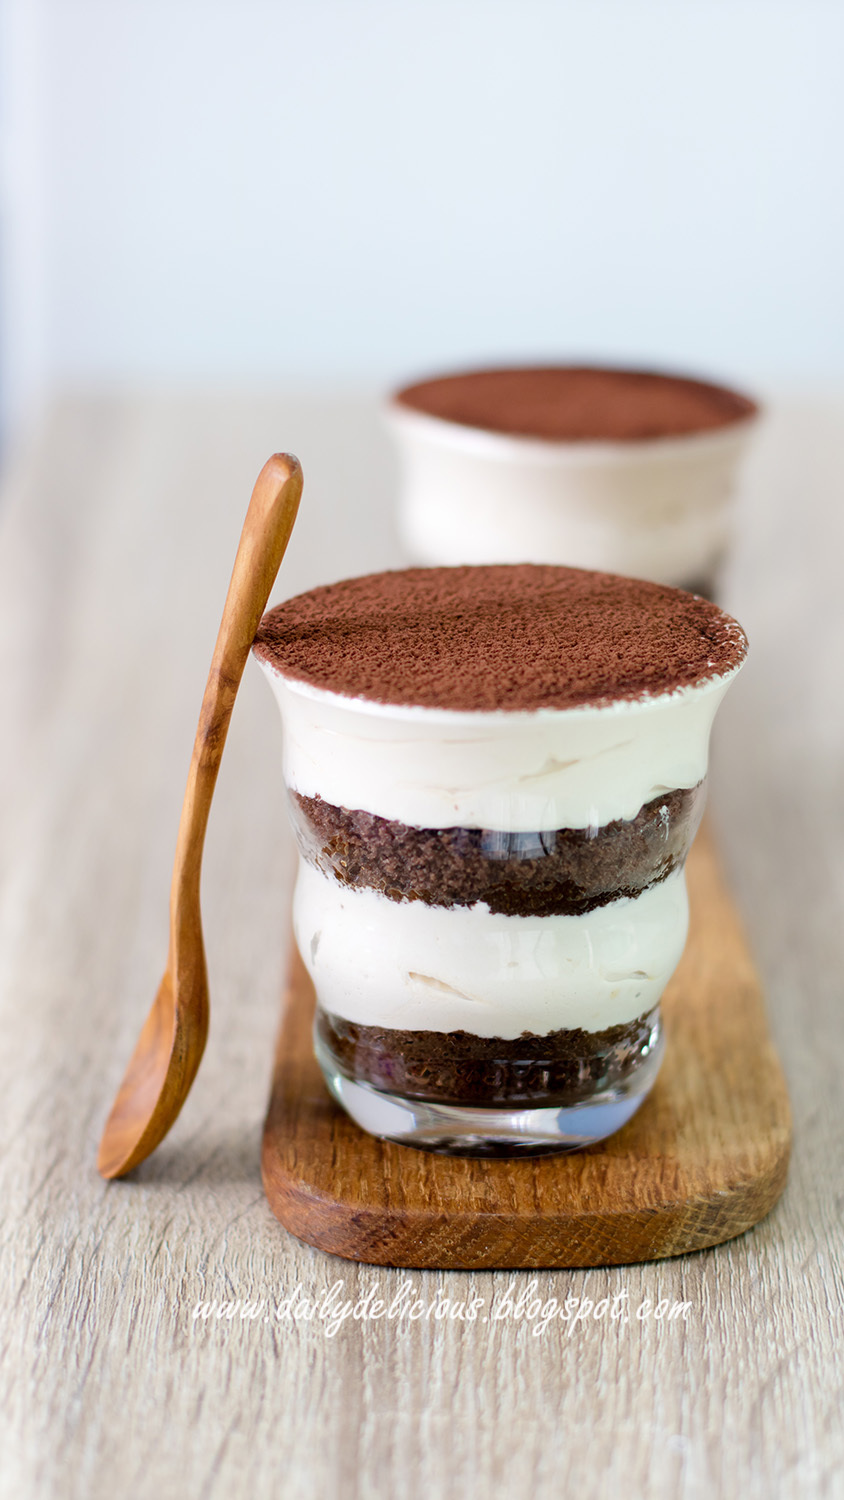 Tiramisu (No cheese version): Easy happy treat!